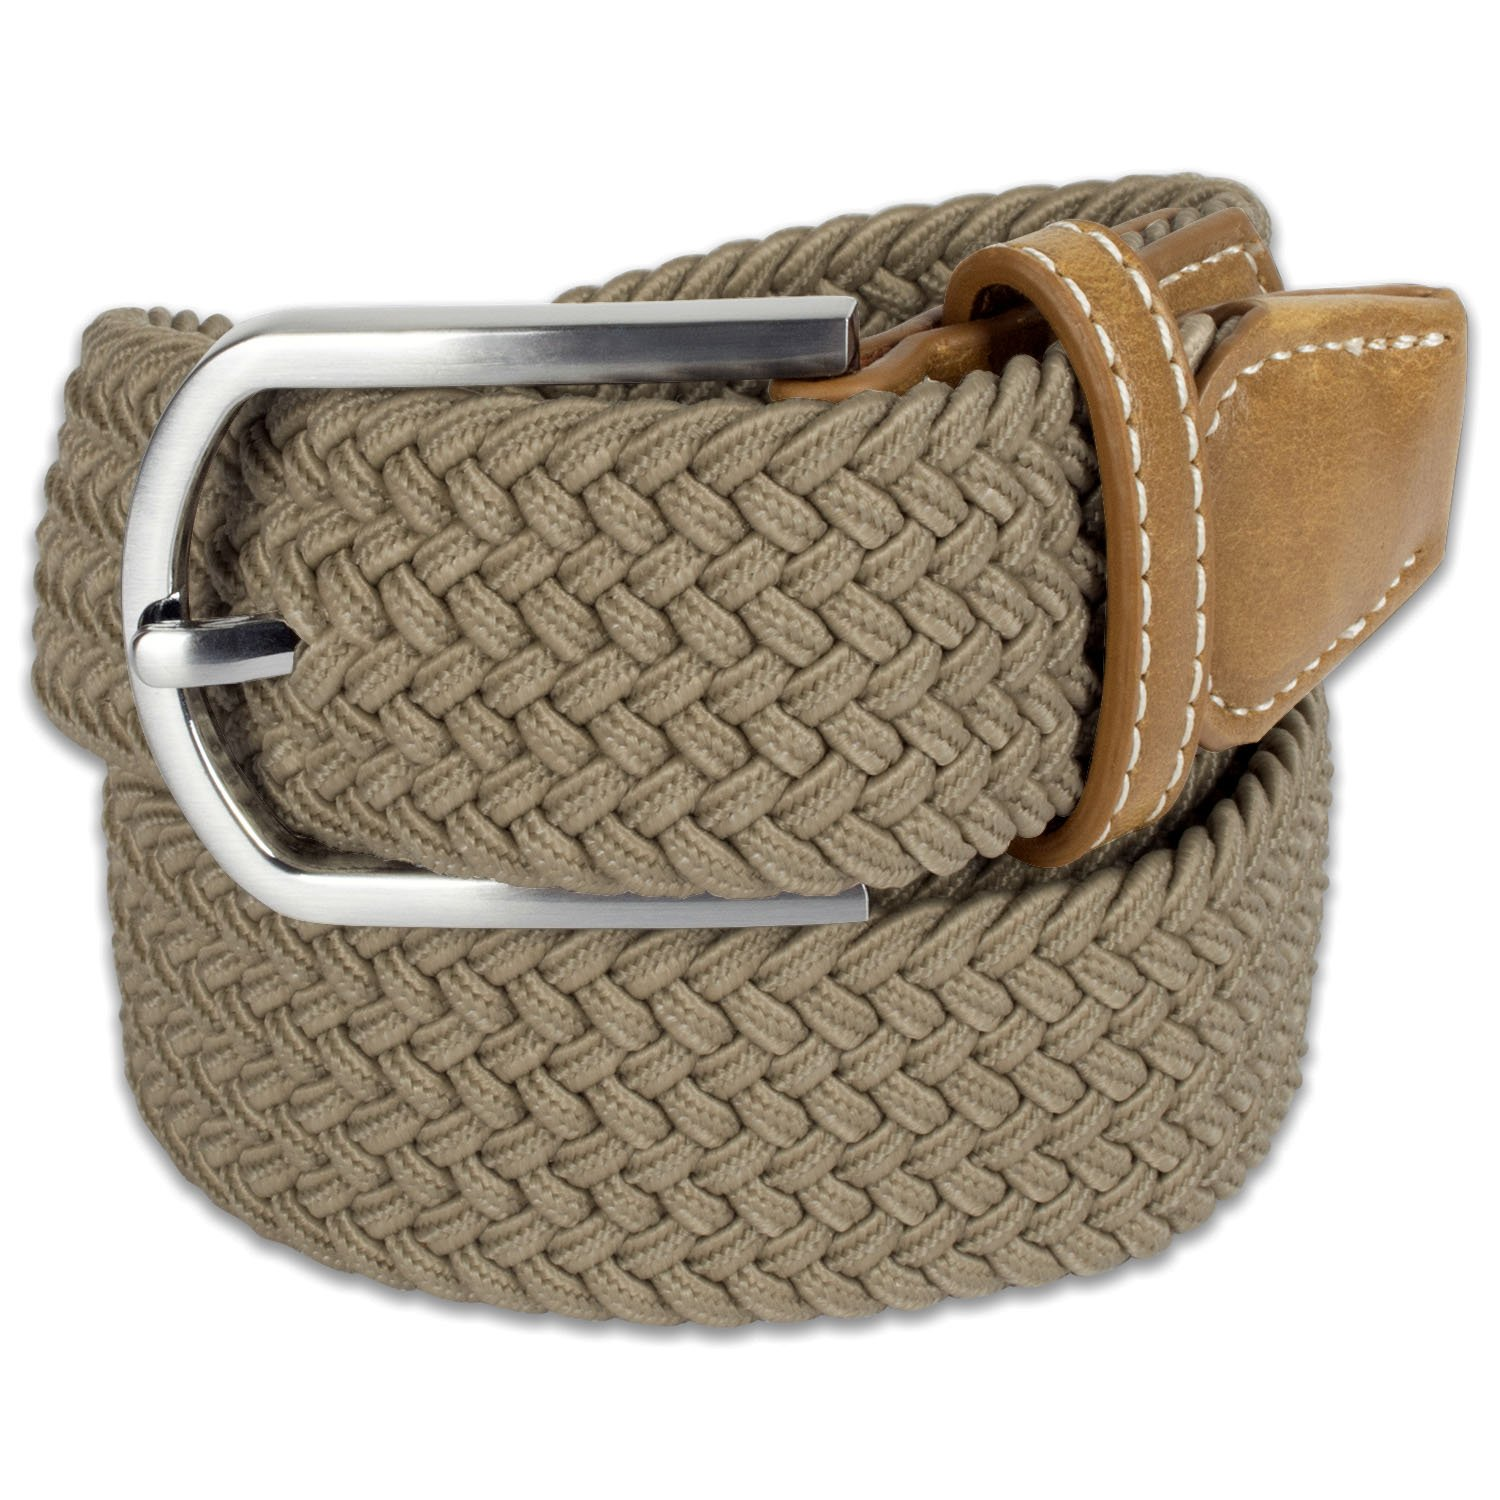 E-Living Store Men's 32mm Woven Expandable Braided Stretch Belts, (Available in Multiple Colors & Sizes), Khaki, X-Large (Waist Size 42-44'')